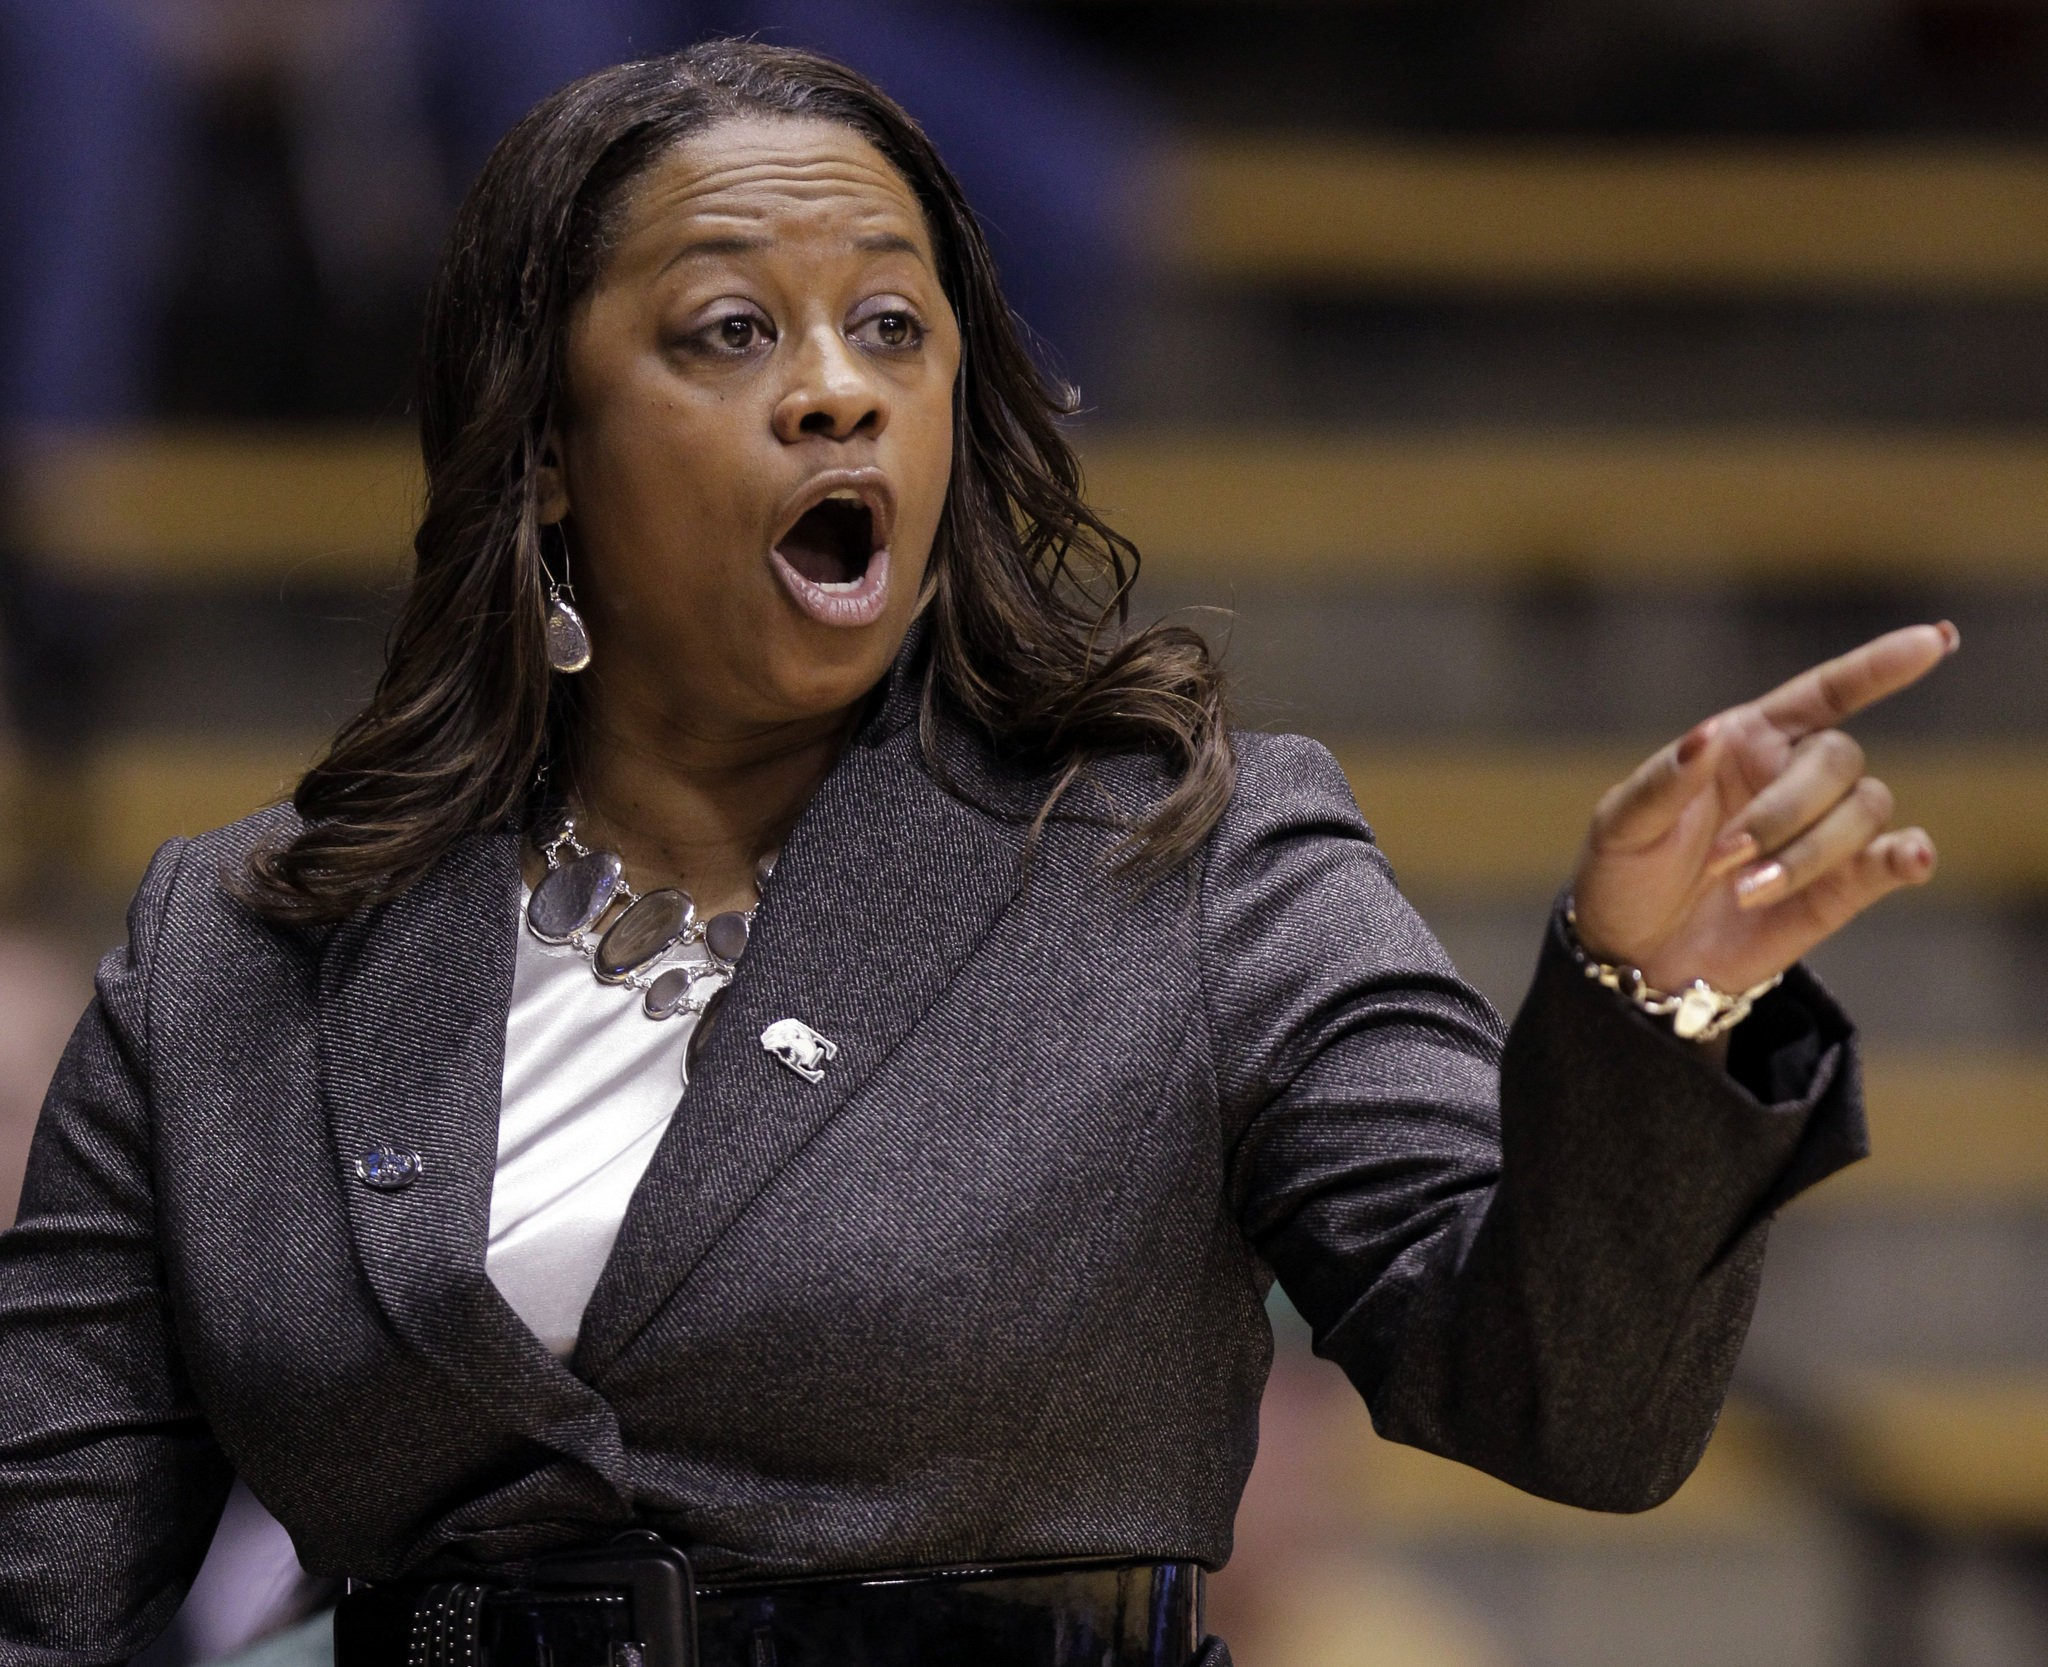 Not One Player from Detroit Mercy's Women's College Basketball Team is Returning, but the Coach Is